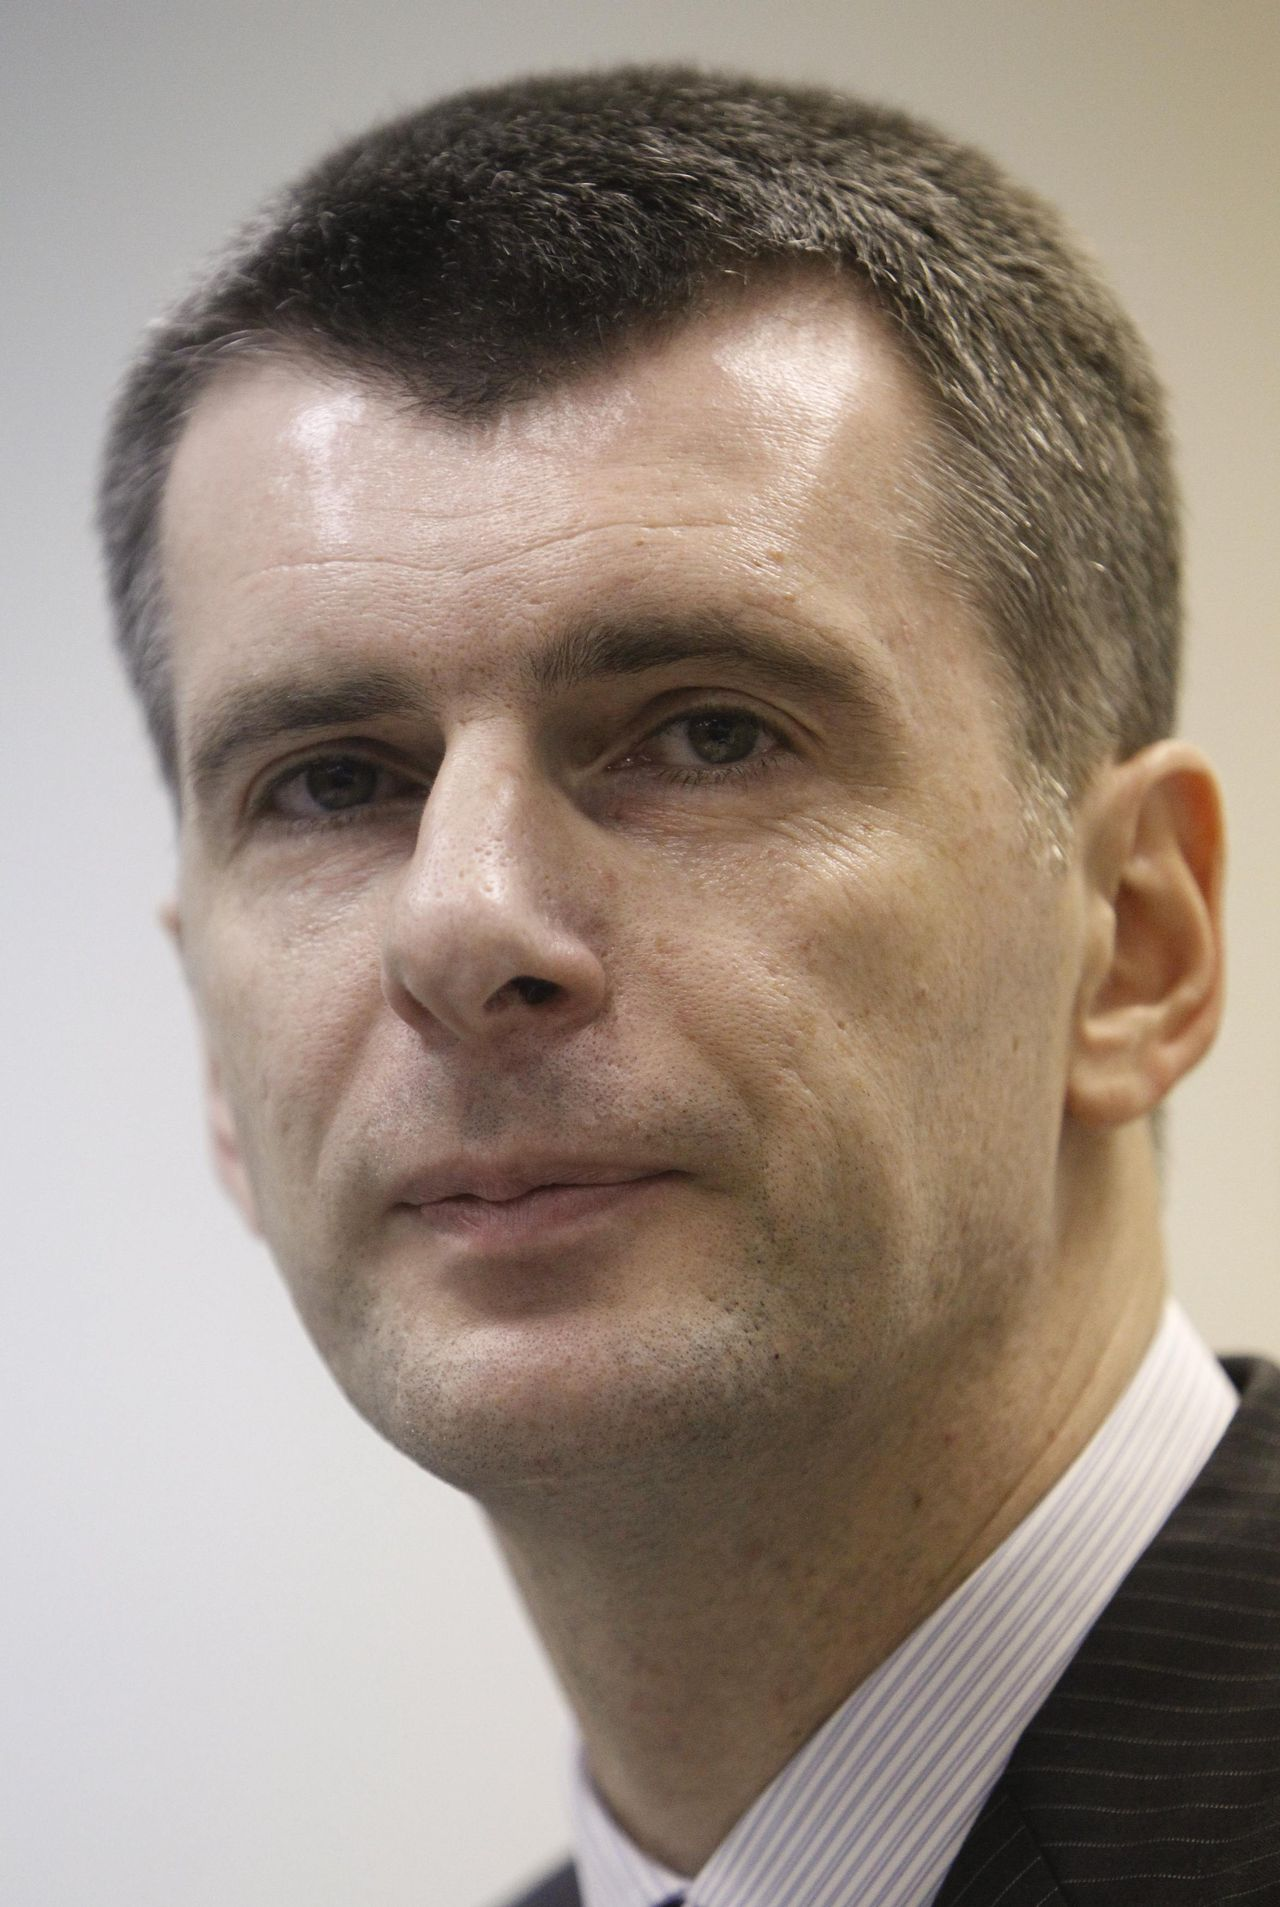 Russian billionaire Mikhail Prokhorov looks on during a news conference in Moscow December 12, 2011. Prokhorov announced on Monday his intention to run for president during the March 2012 election. REUTERS/Sergei Karpukhin (RUSSIA - Tags: POLITICS ELECTIONS HEADSHOT)